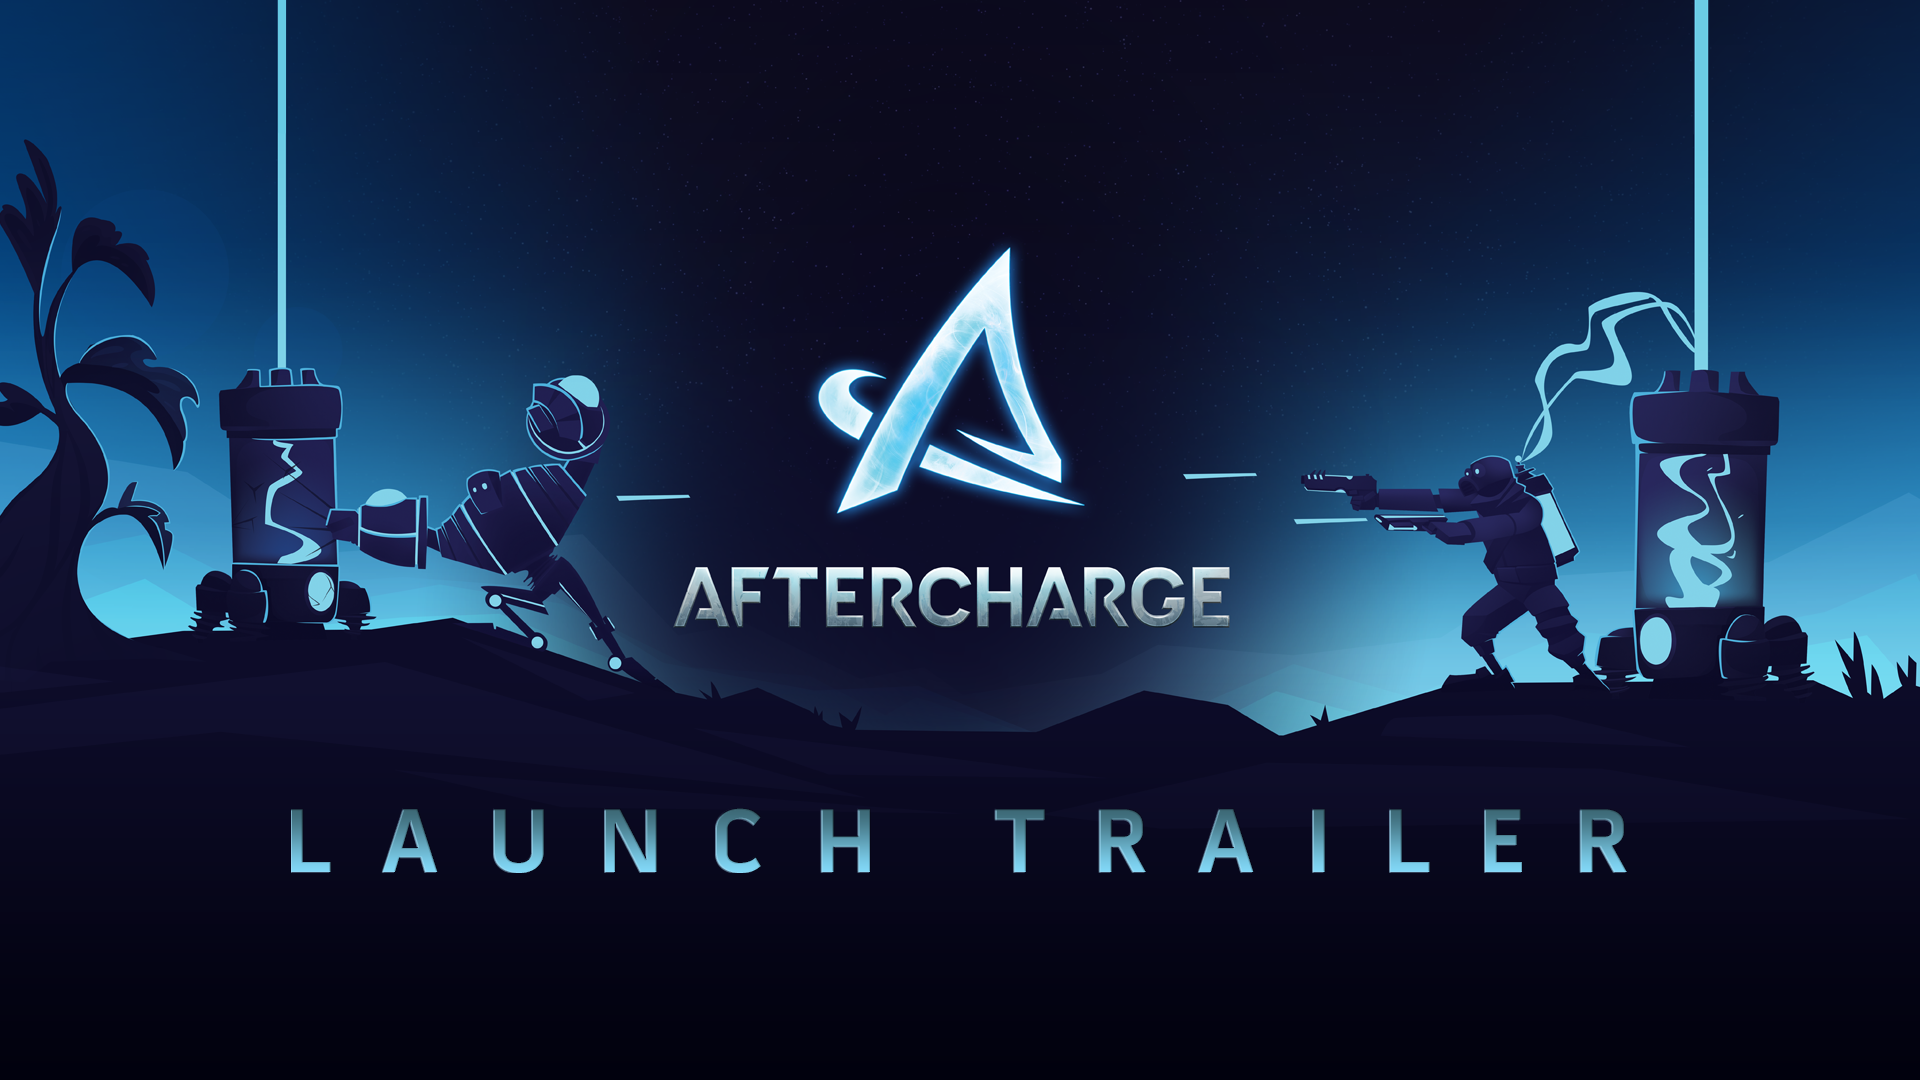 Aftercharge is launching on January 10